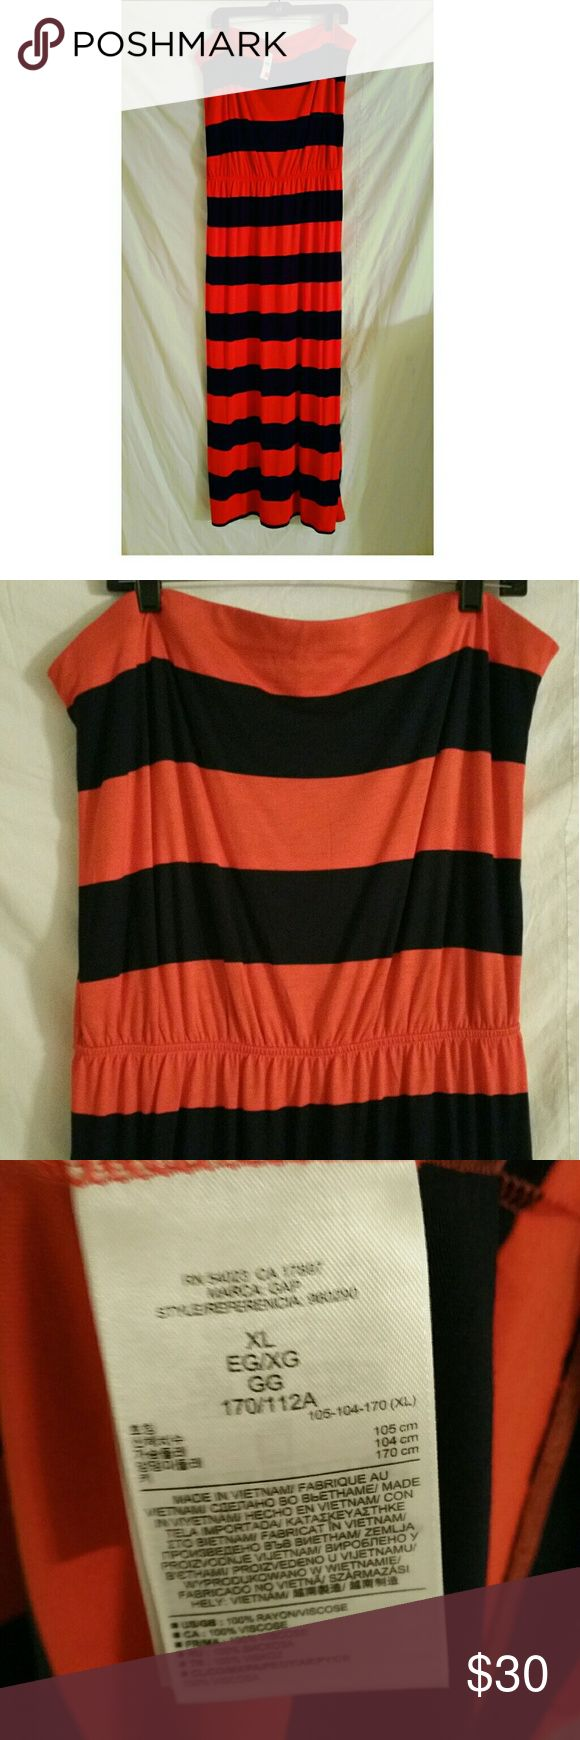 "Gap Striped Maxi Dress Strapless Maxi Dress Loose fitting top Length: 55"" Chest: 18.5"" Color: orange and navy GAP Dresses Maxi"